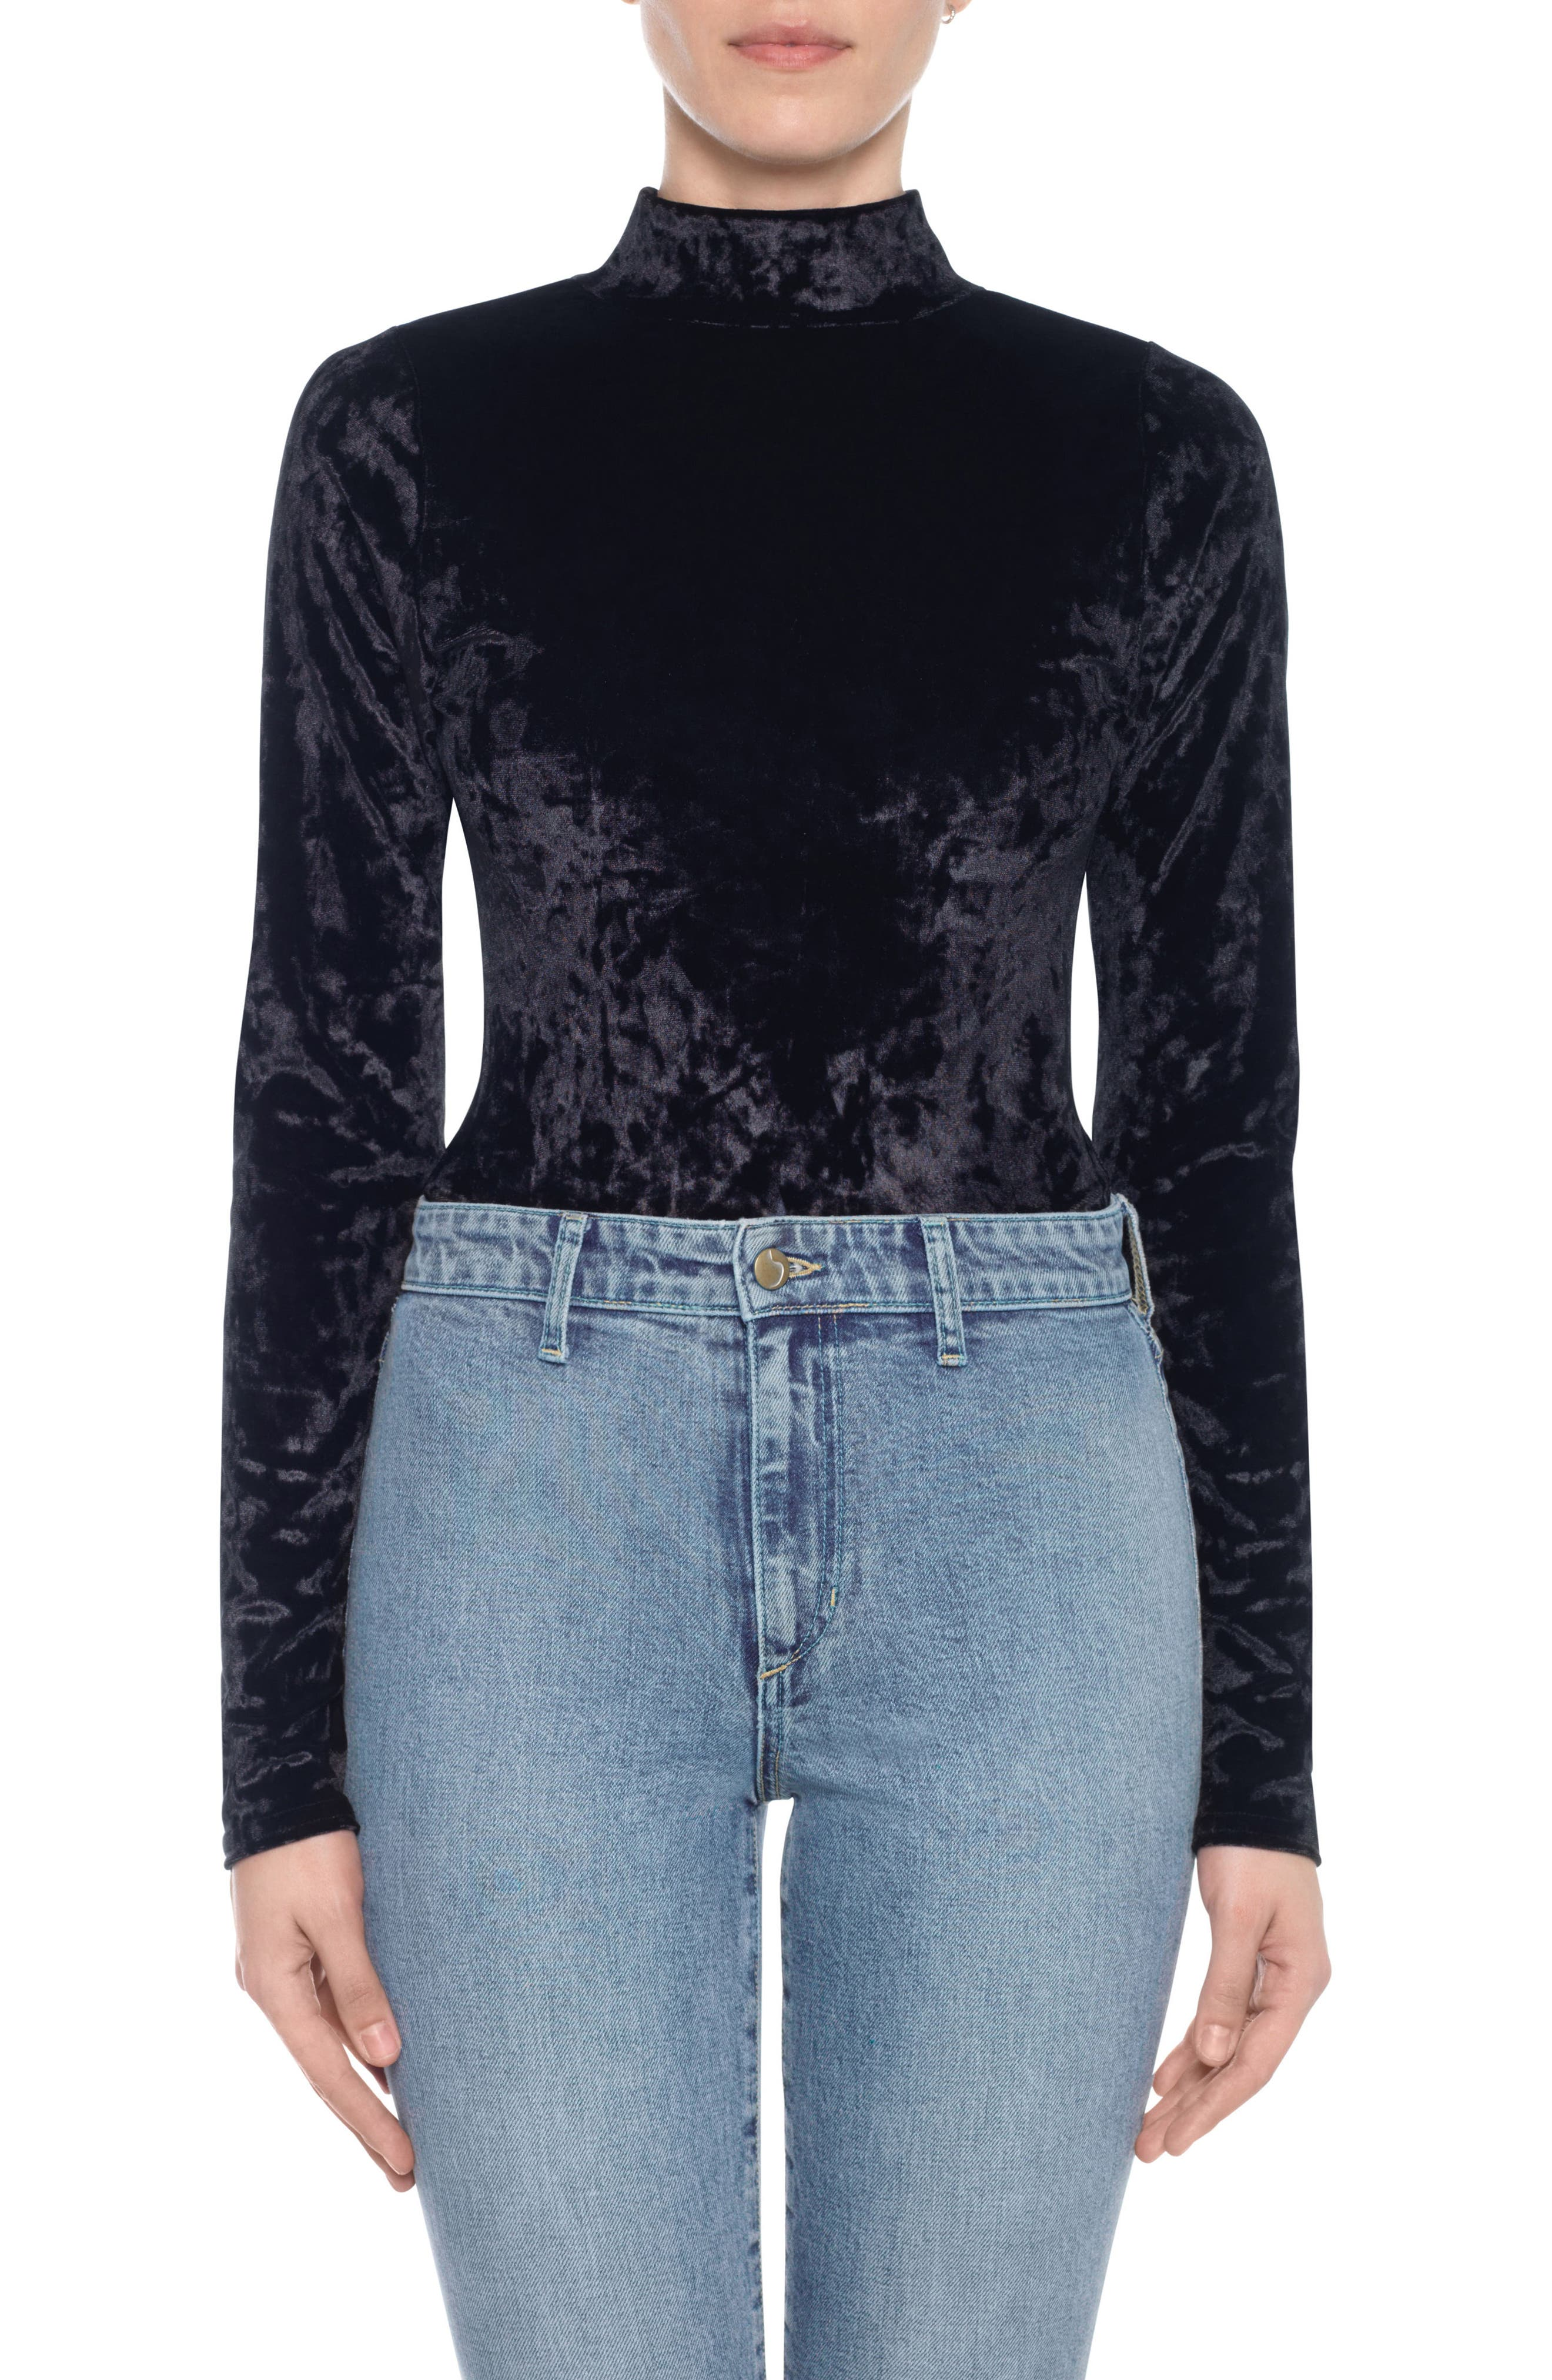 Taylor Hill x Joe's Mock Neck Velvet Bodysuit,                             Main thumbnail 1, color,                             Black